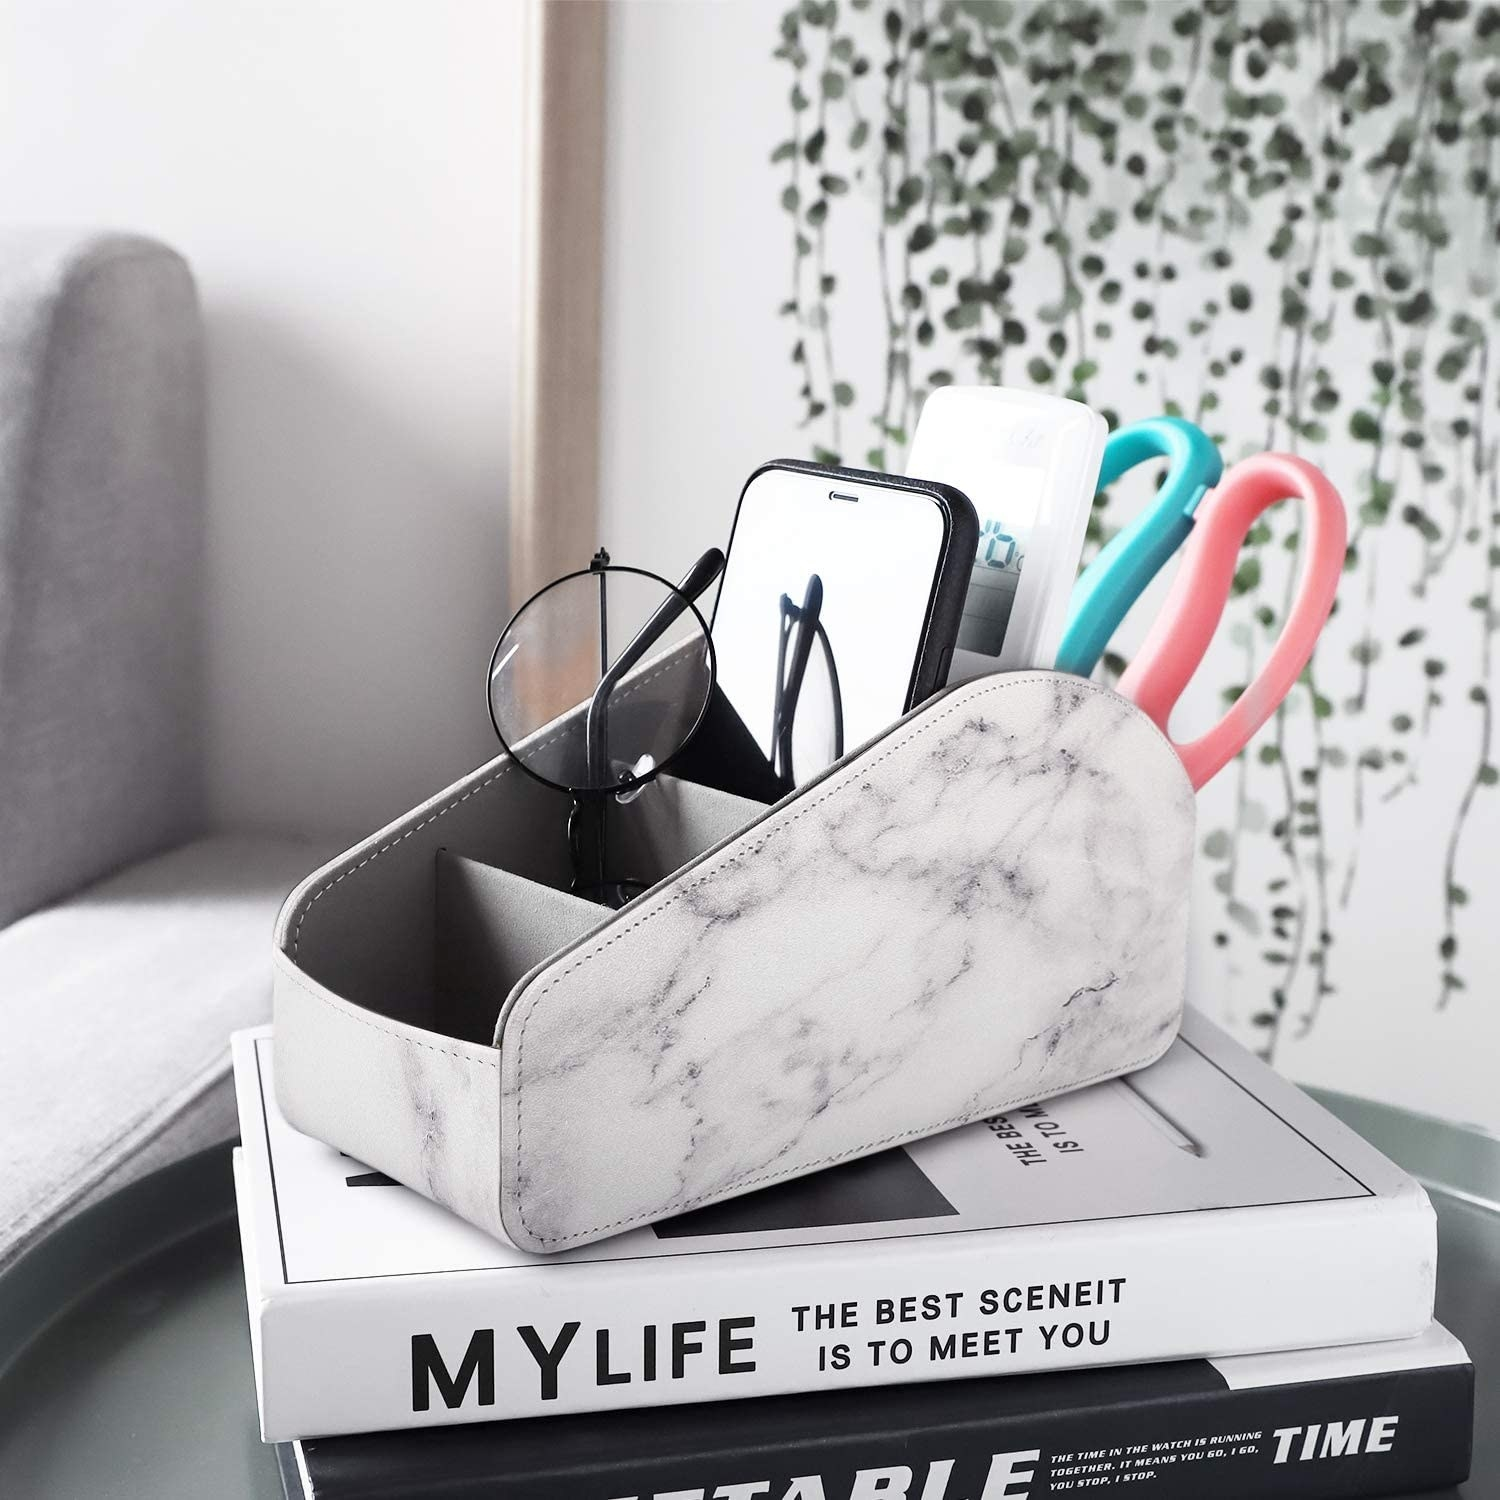 A fabric remote control organizer sitting on a stack of books There are a pair of glasses, a phone, a remote, and a pair of scissors in a different compartment